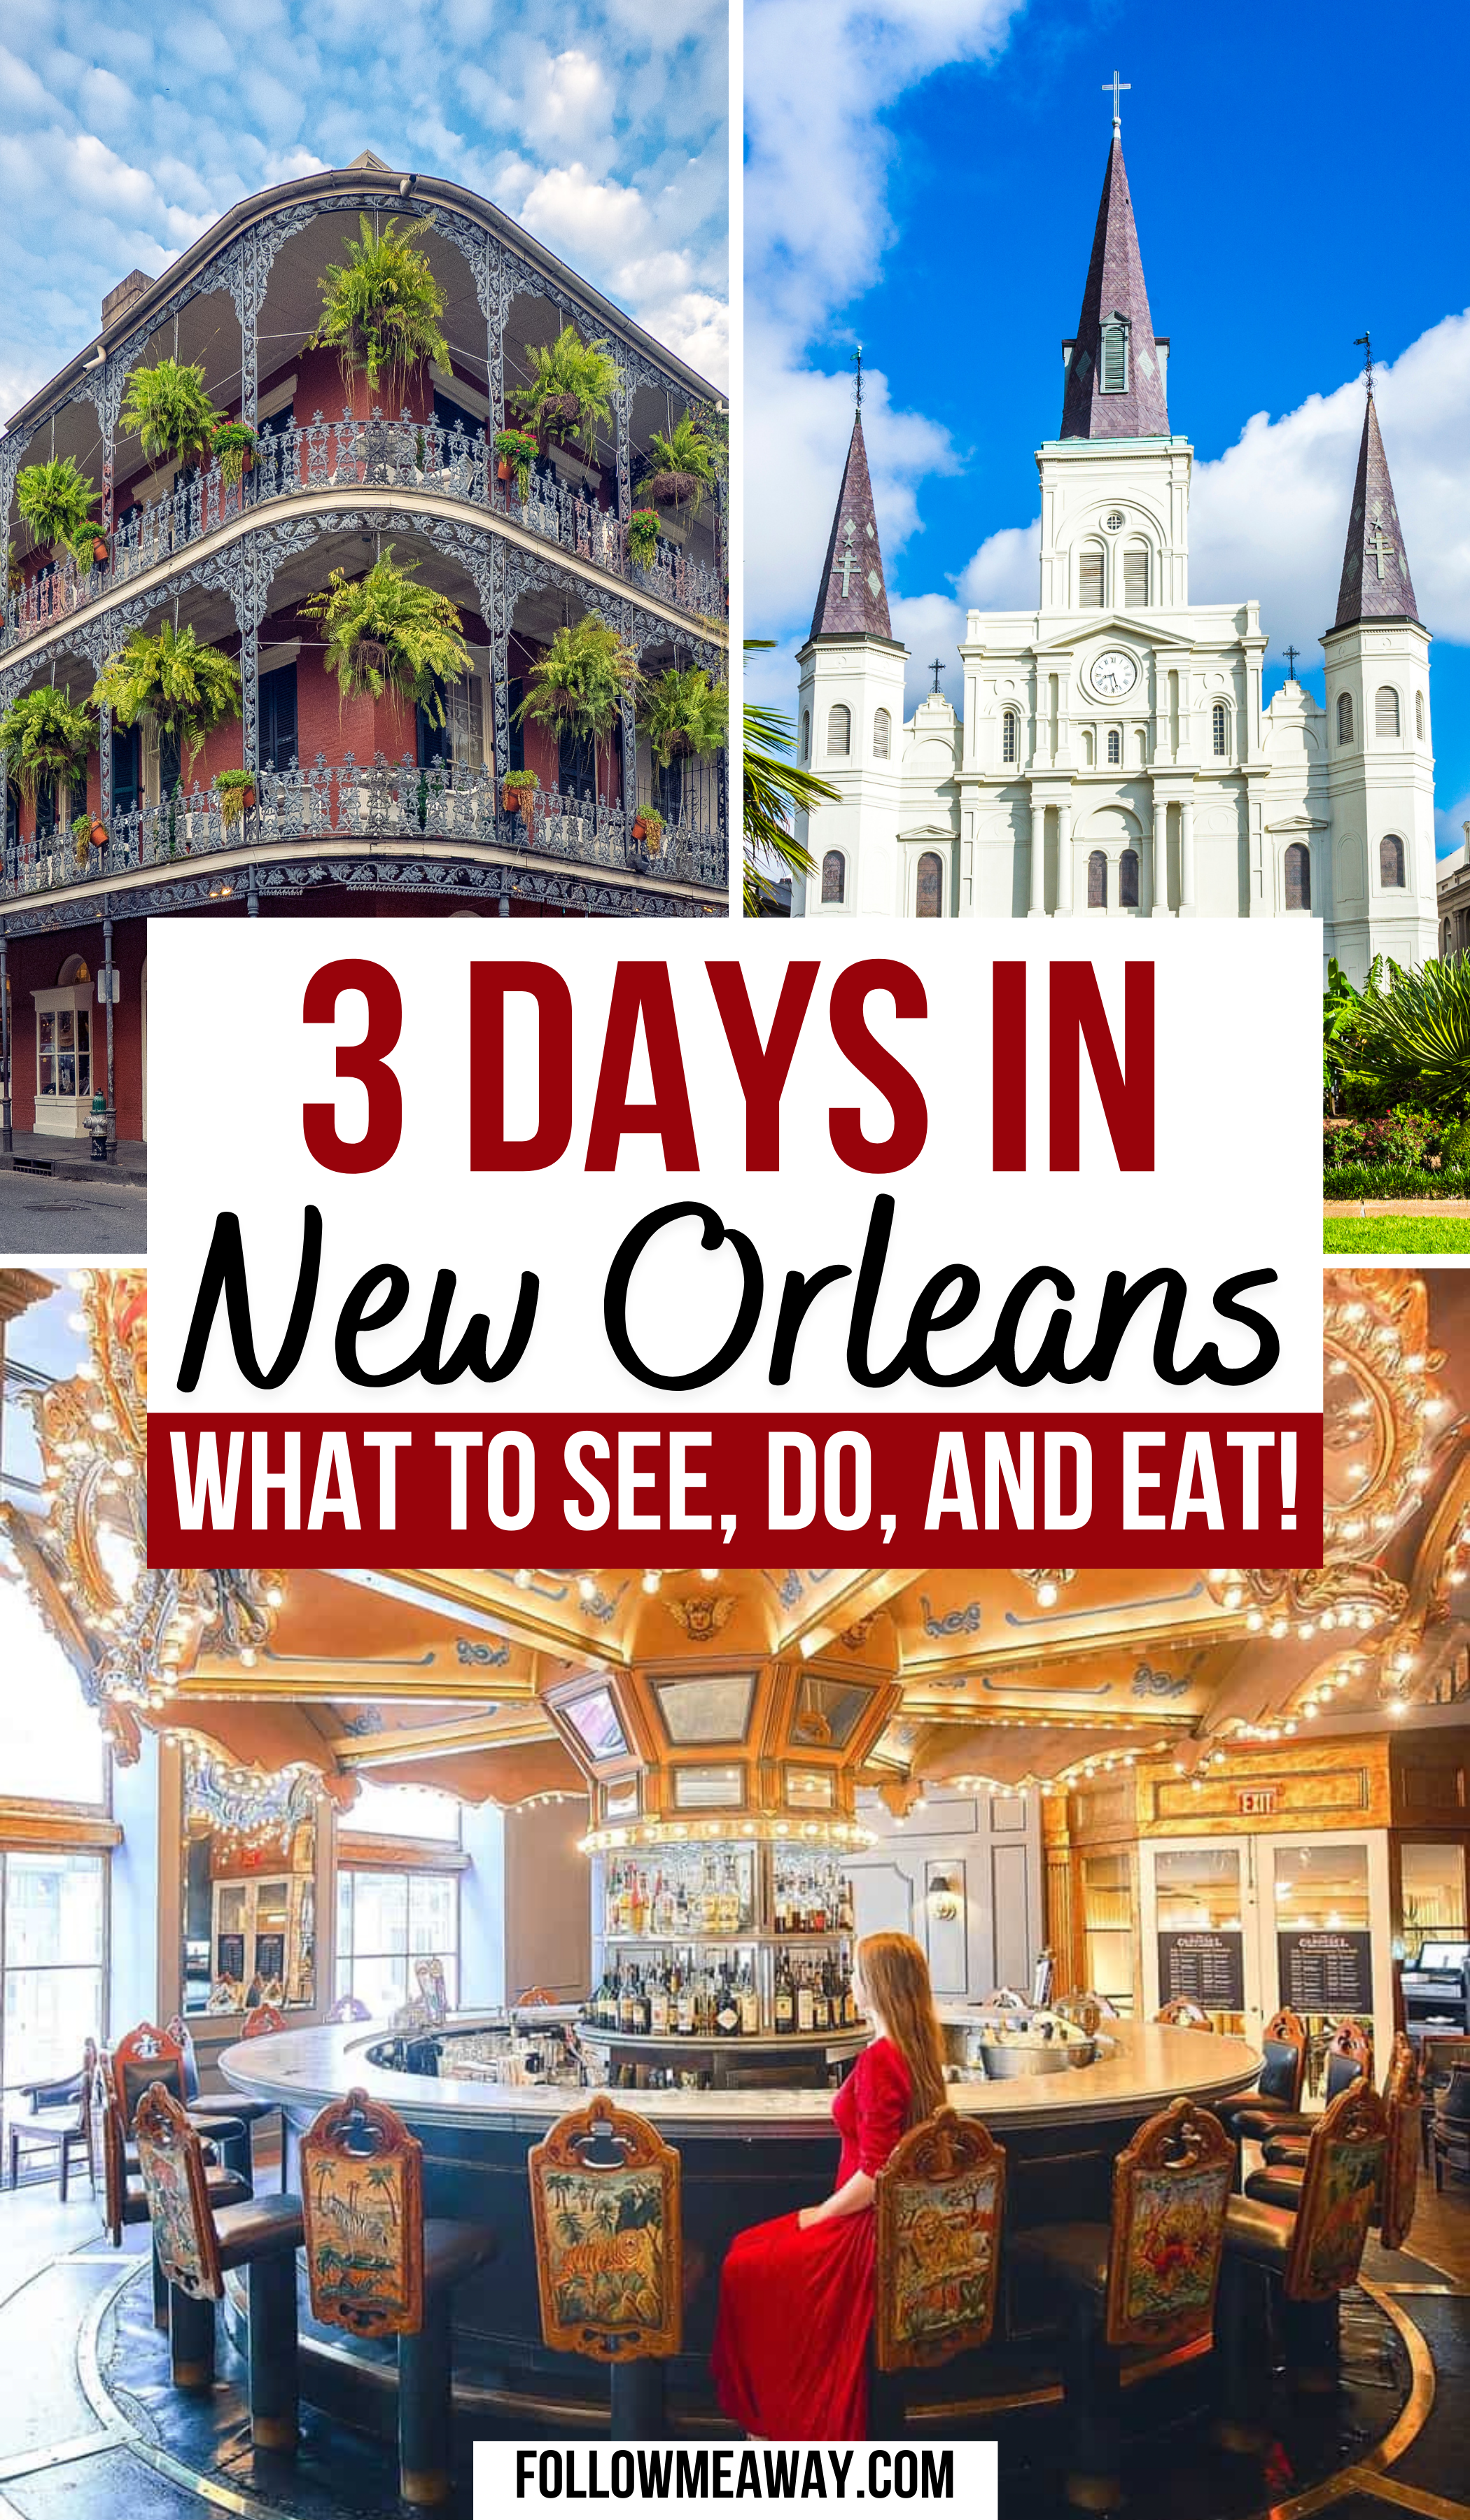 3 Days In New Orleans | Bucket list locations in New Orleans | beautiful locations in New Orleans | instagrammable locations in New Orleans | best instagram photo spots in New Orleans | best places to eat in New Orleans | cutest streets in New Orleans | travel guide for New Orleans | couples travel in New Orleans | tips for discovering New Orleans | traveling New Orleans like a pro | how to travel in NOLA | how to get around in NOLA | best places to see in NOLA | best places to stay in NOLA